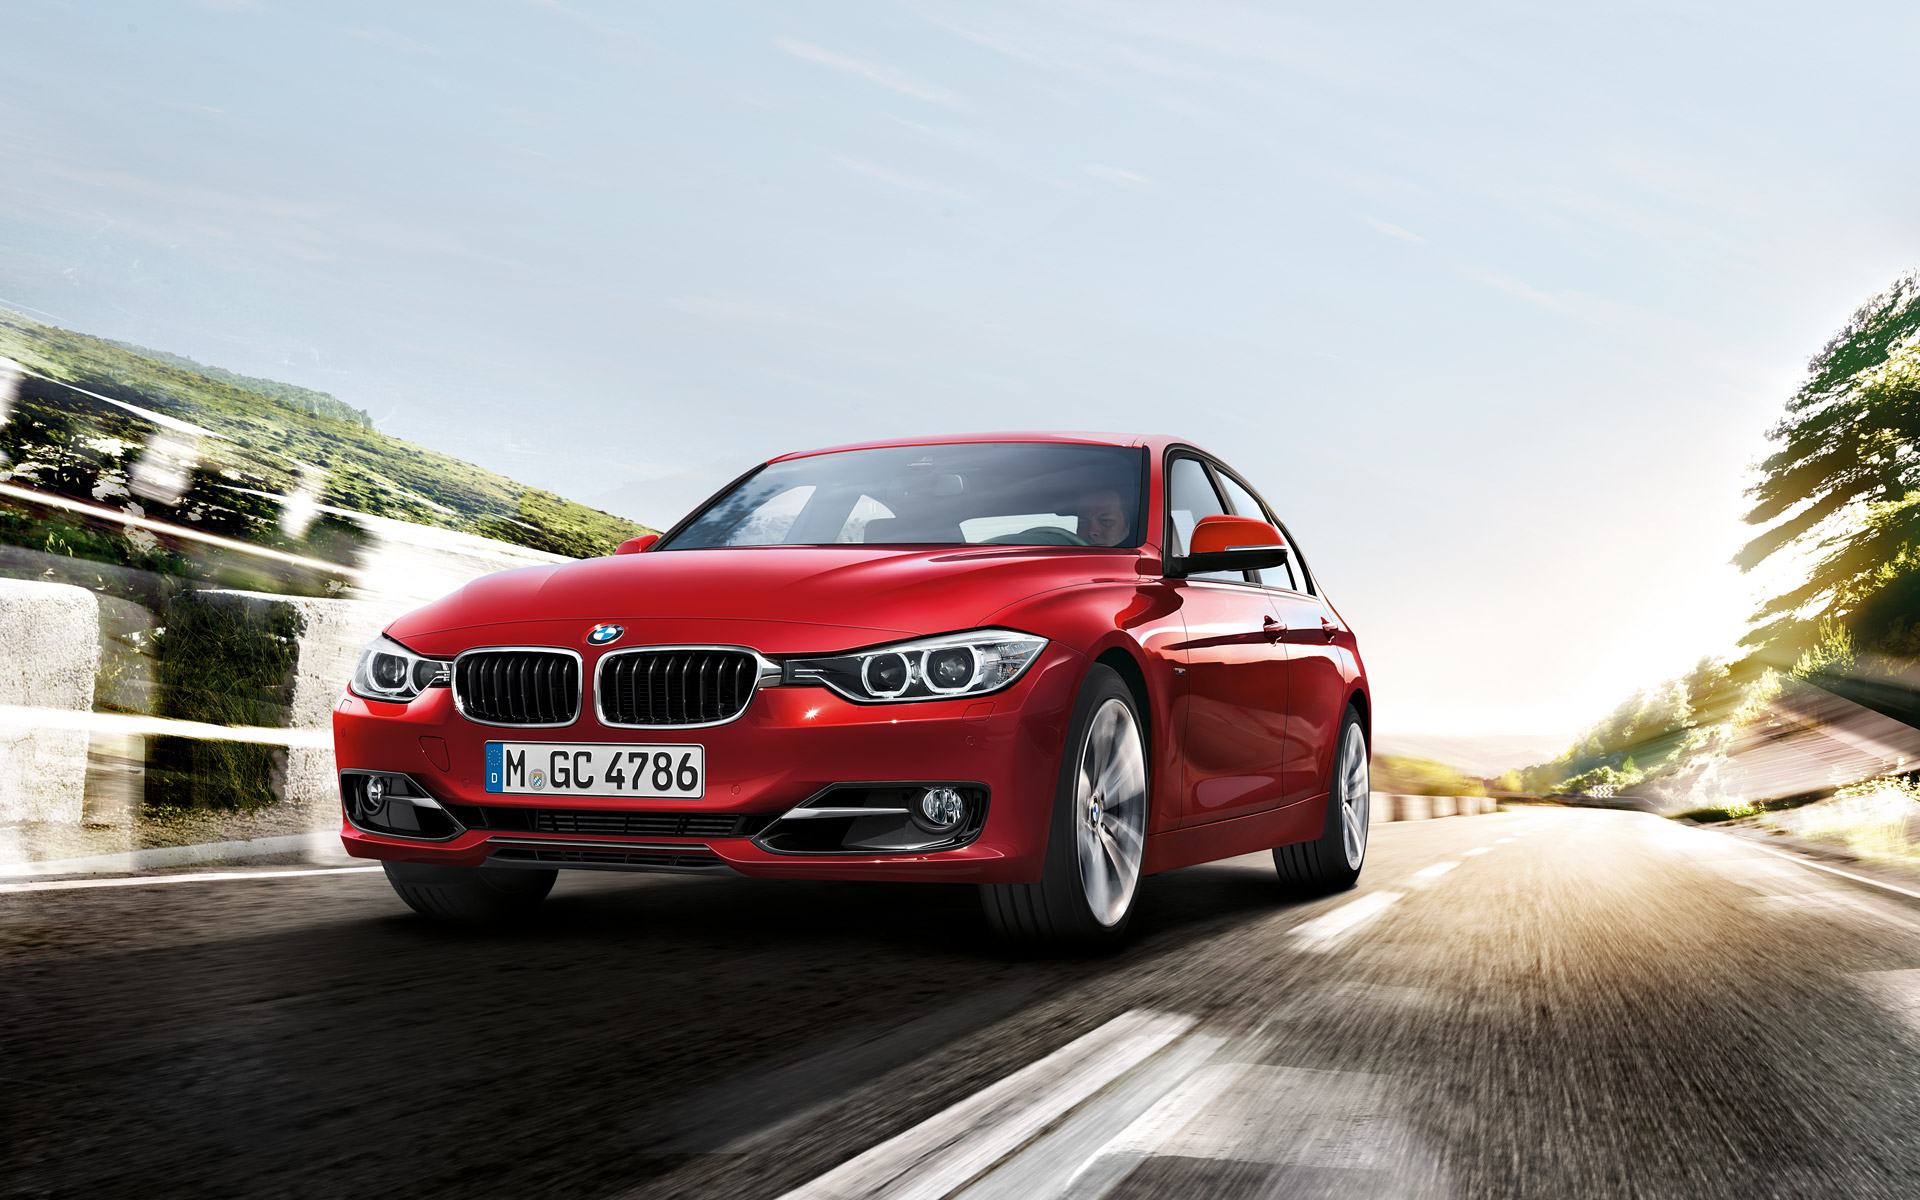 BMW 3 Series In Red Front View Wallpaper